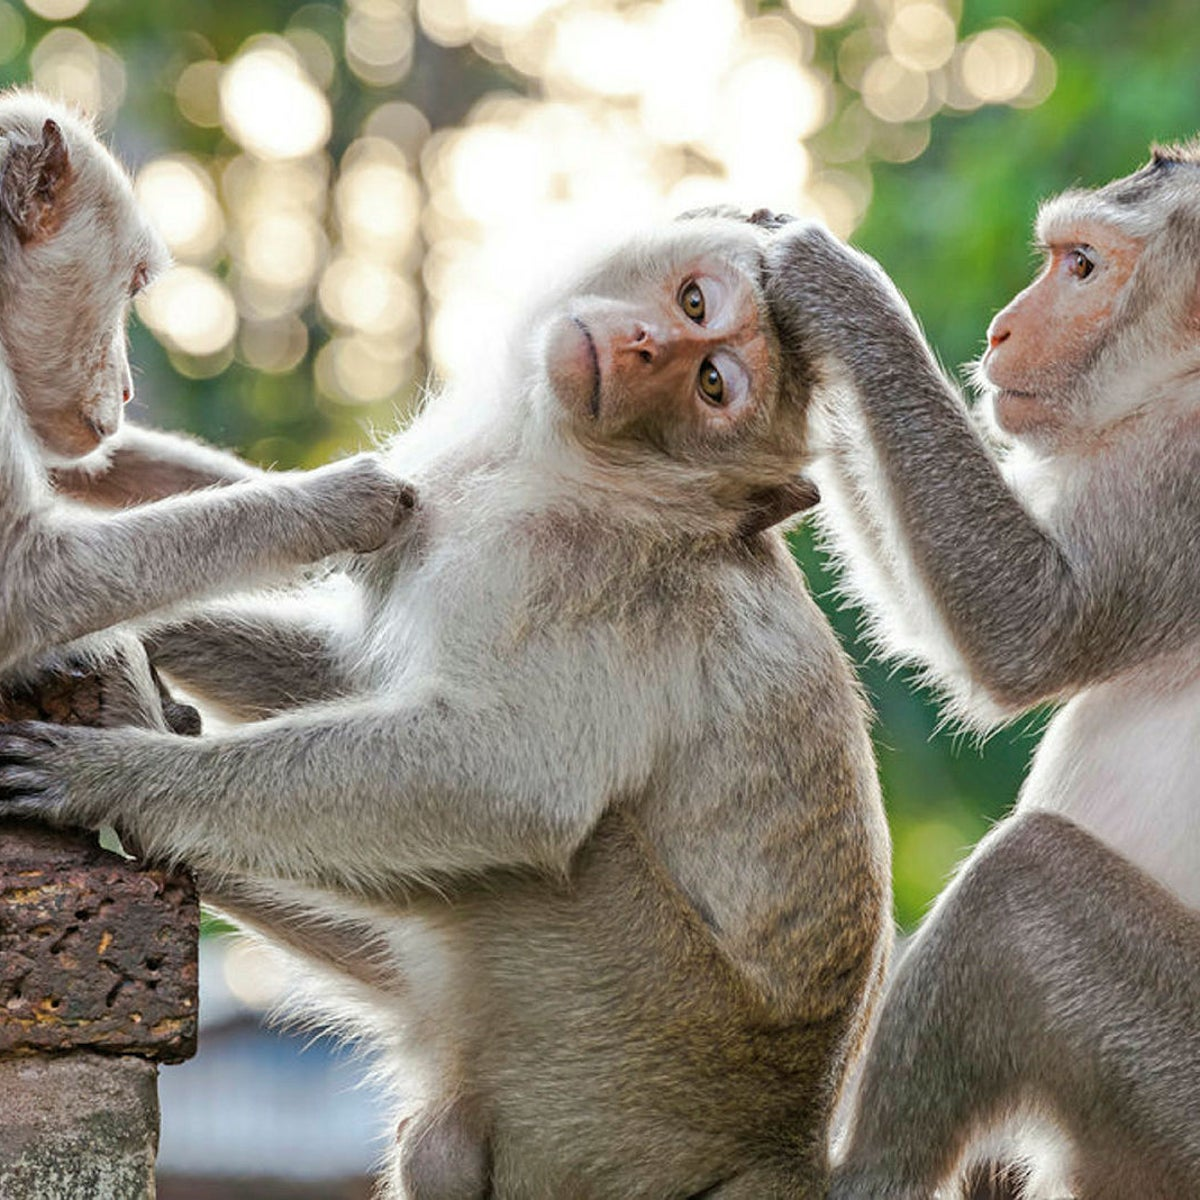 Monkeys checking each other for fleas on concrete fence in a park.